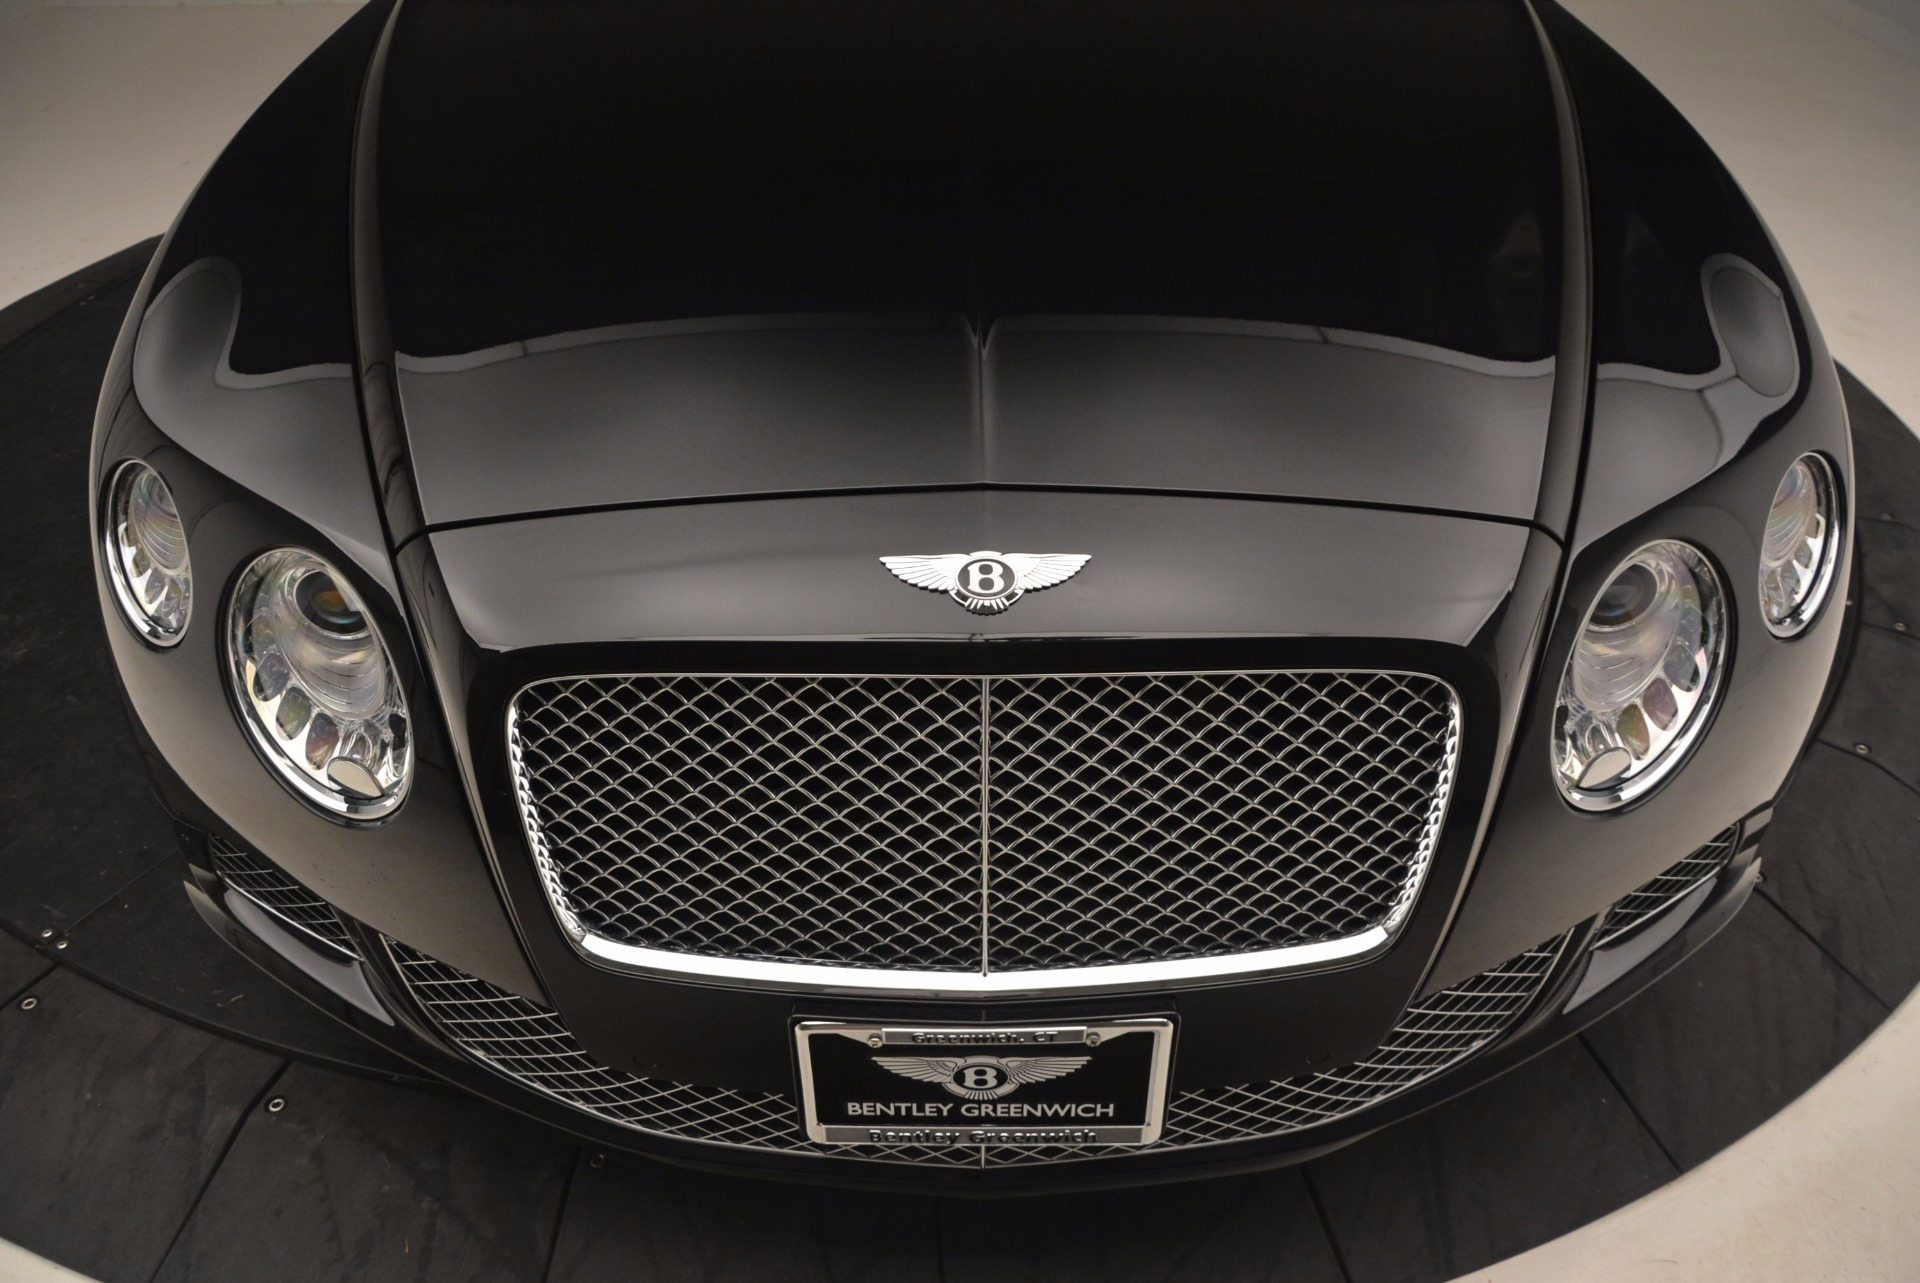 Used 2012 Bentley Continental GT W12 Convertible For Sale In Westport, CT 1104_p25